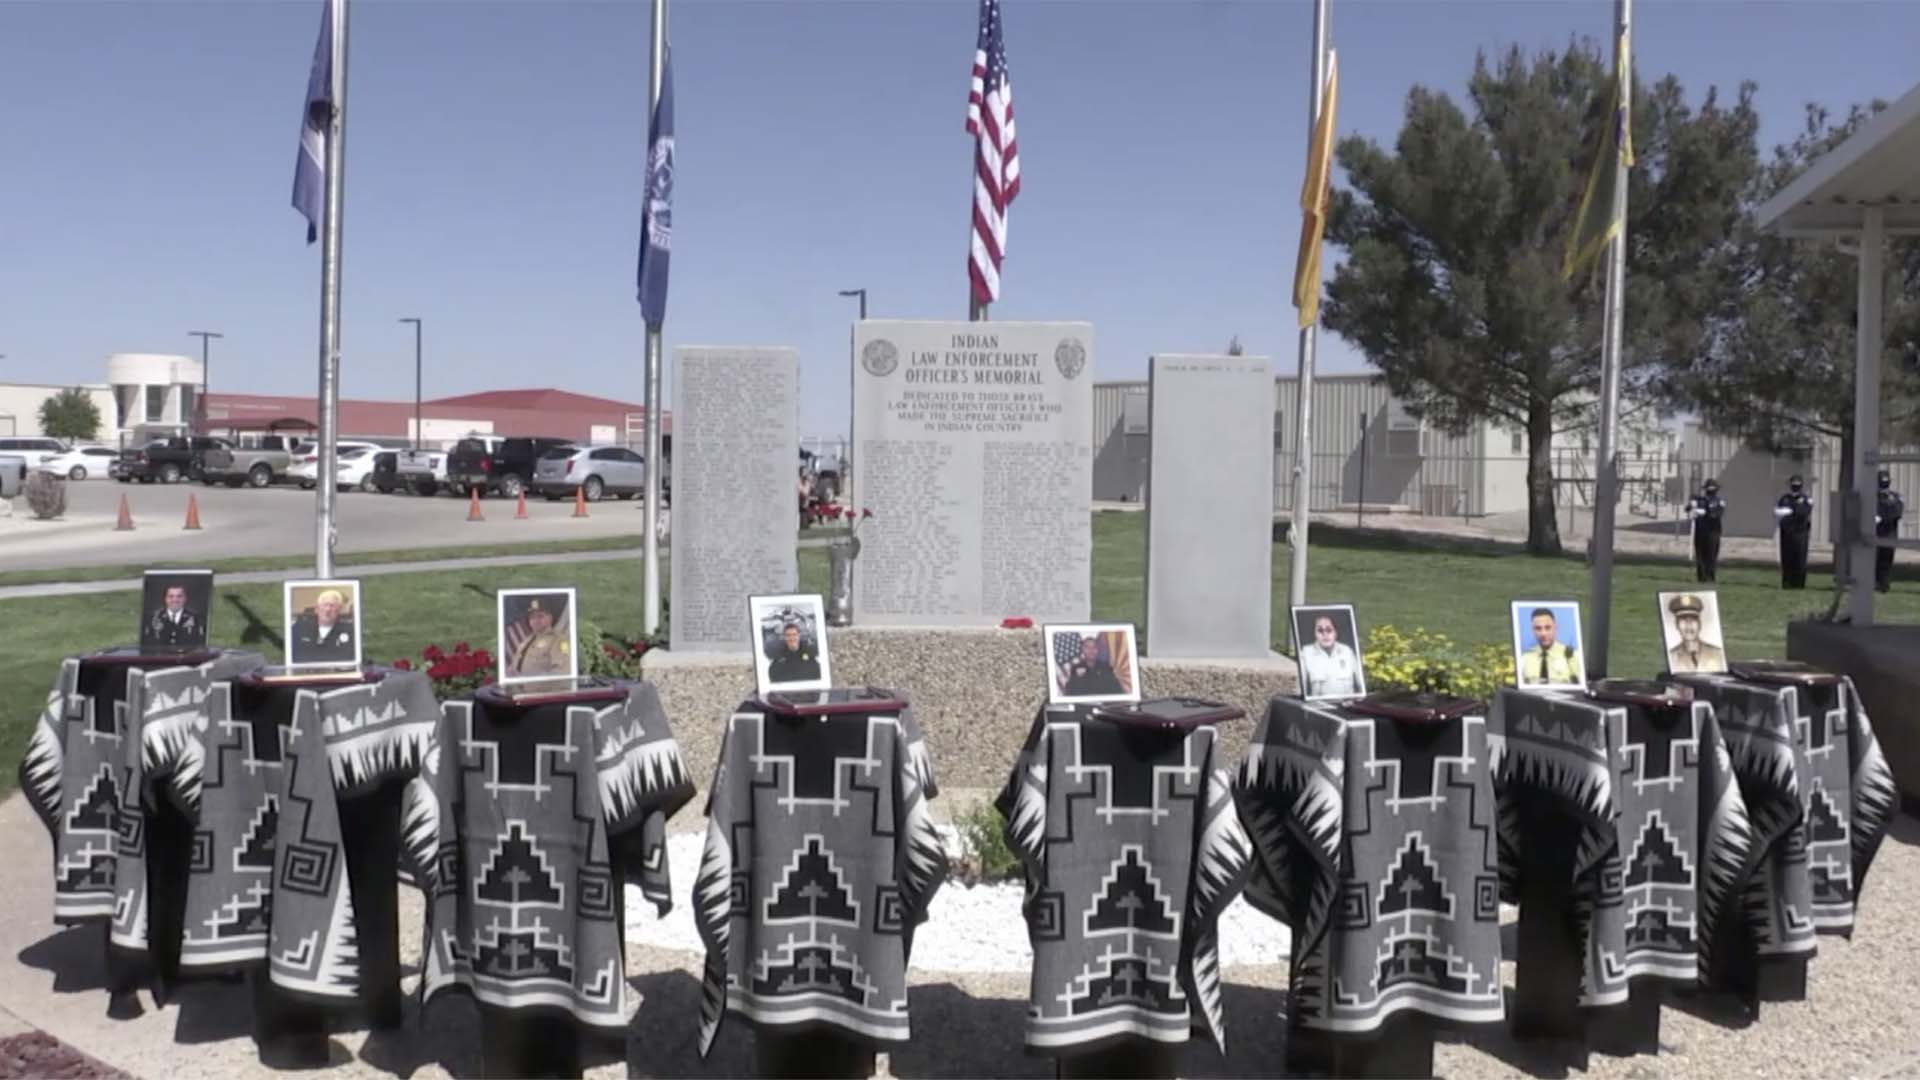 The Bureau of Indian Affairs U.S Indian Police Academy May 6, 2021, virtually honored eight tribal officers who died in the line of duty. One was officer Officer Bryan Brown of the Tohono O'odham Nation Police Department.